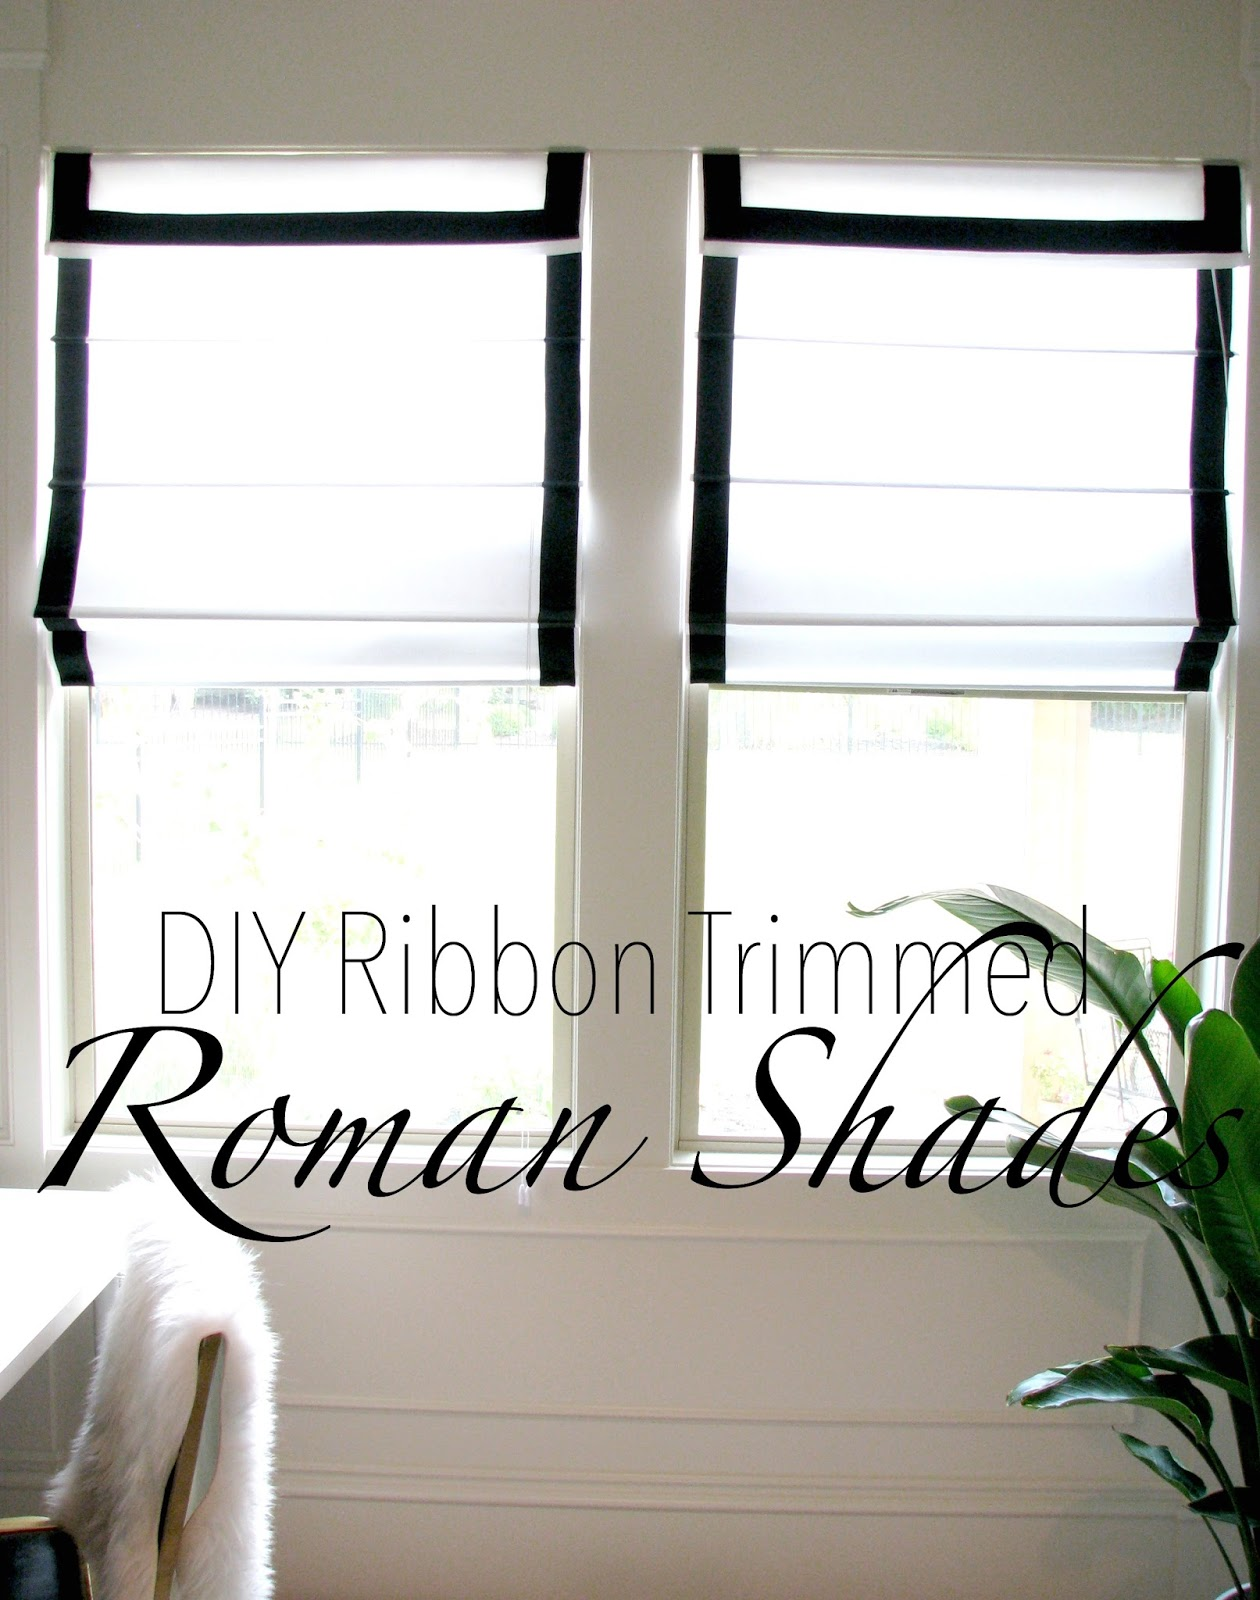 cheap i inexpensive no nap diy blinds how heart sew to roman with on tutorial time shades make mini from